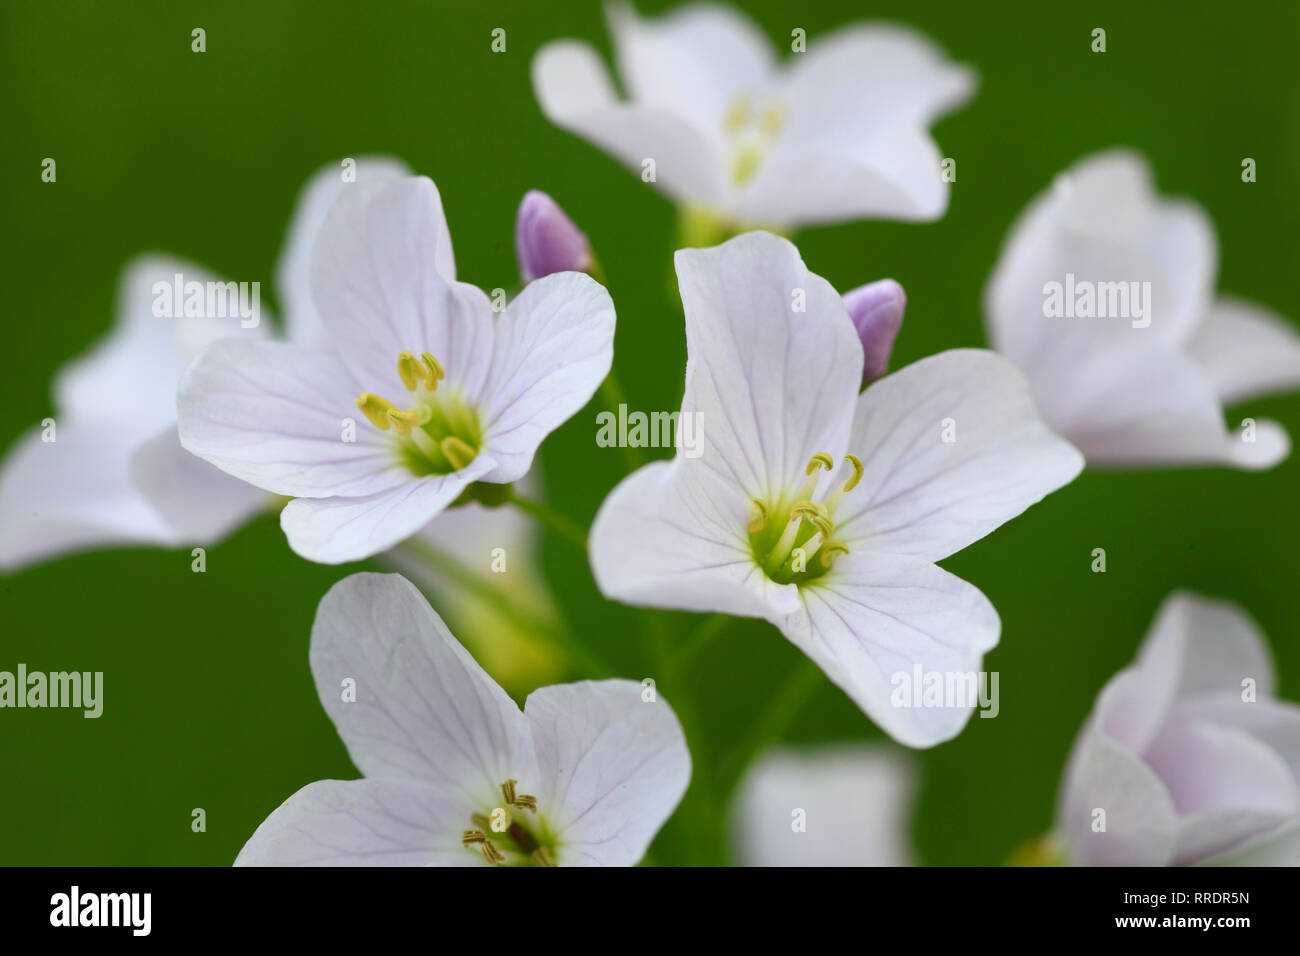 botany, cuckoo flower, Cardamine pratensis, cuckoo flower, Switzerland, Additional-Rights-Clearance-Info-Not-Available Stock Photo